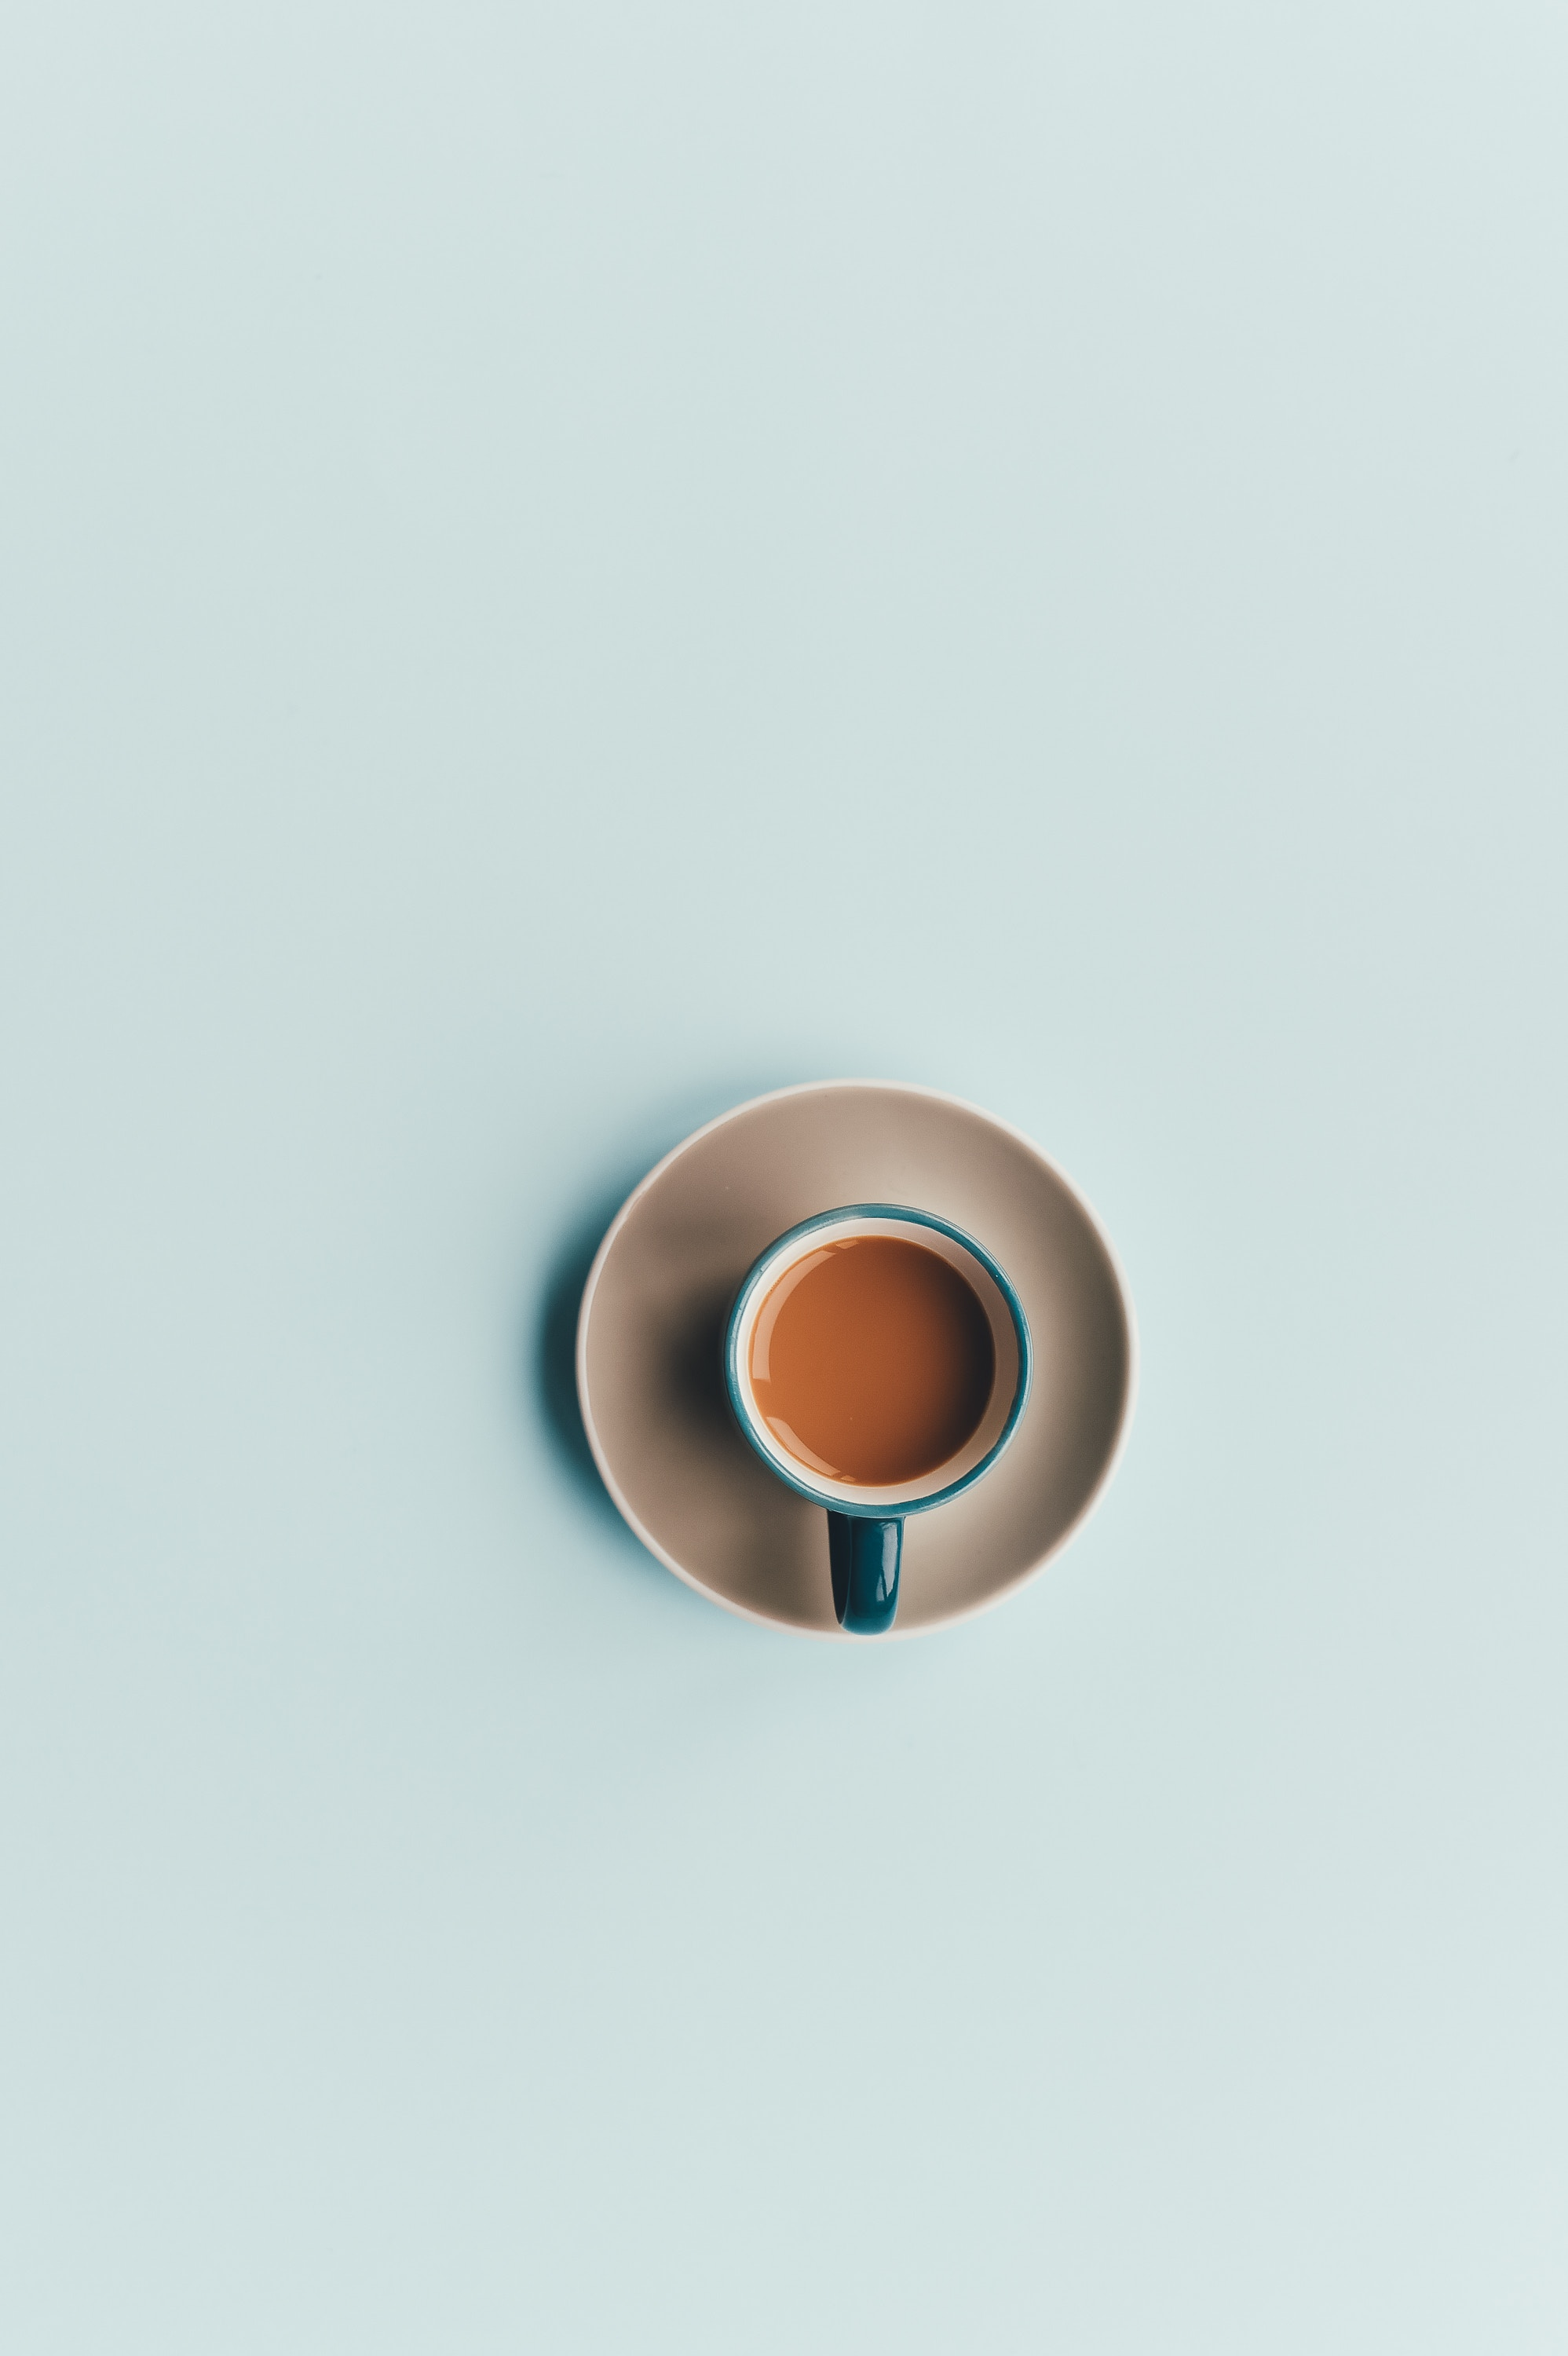 81345 free wallpaper 1080x2400 for phone, download images Coffee, Cup, Minimalism 1080x2400 for mobile